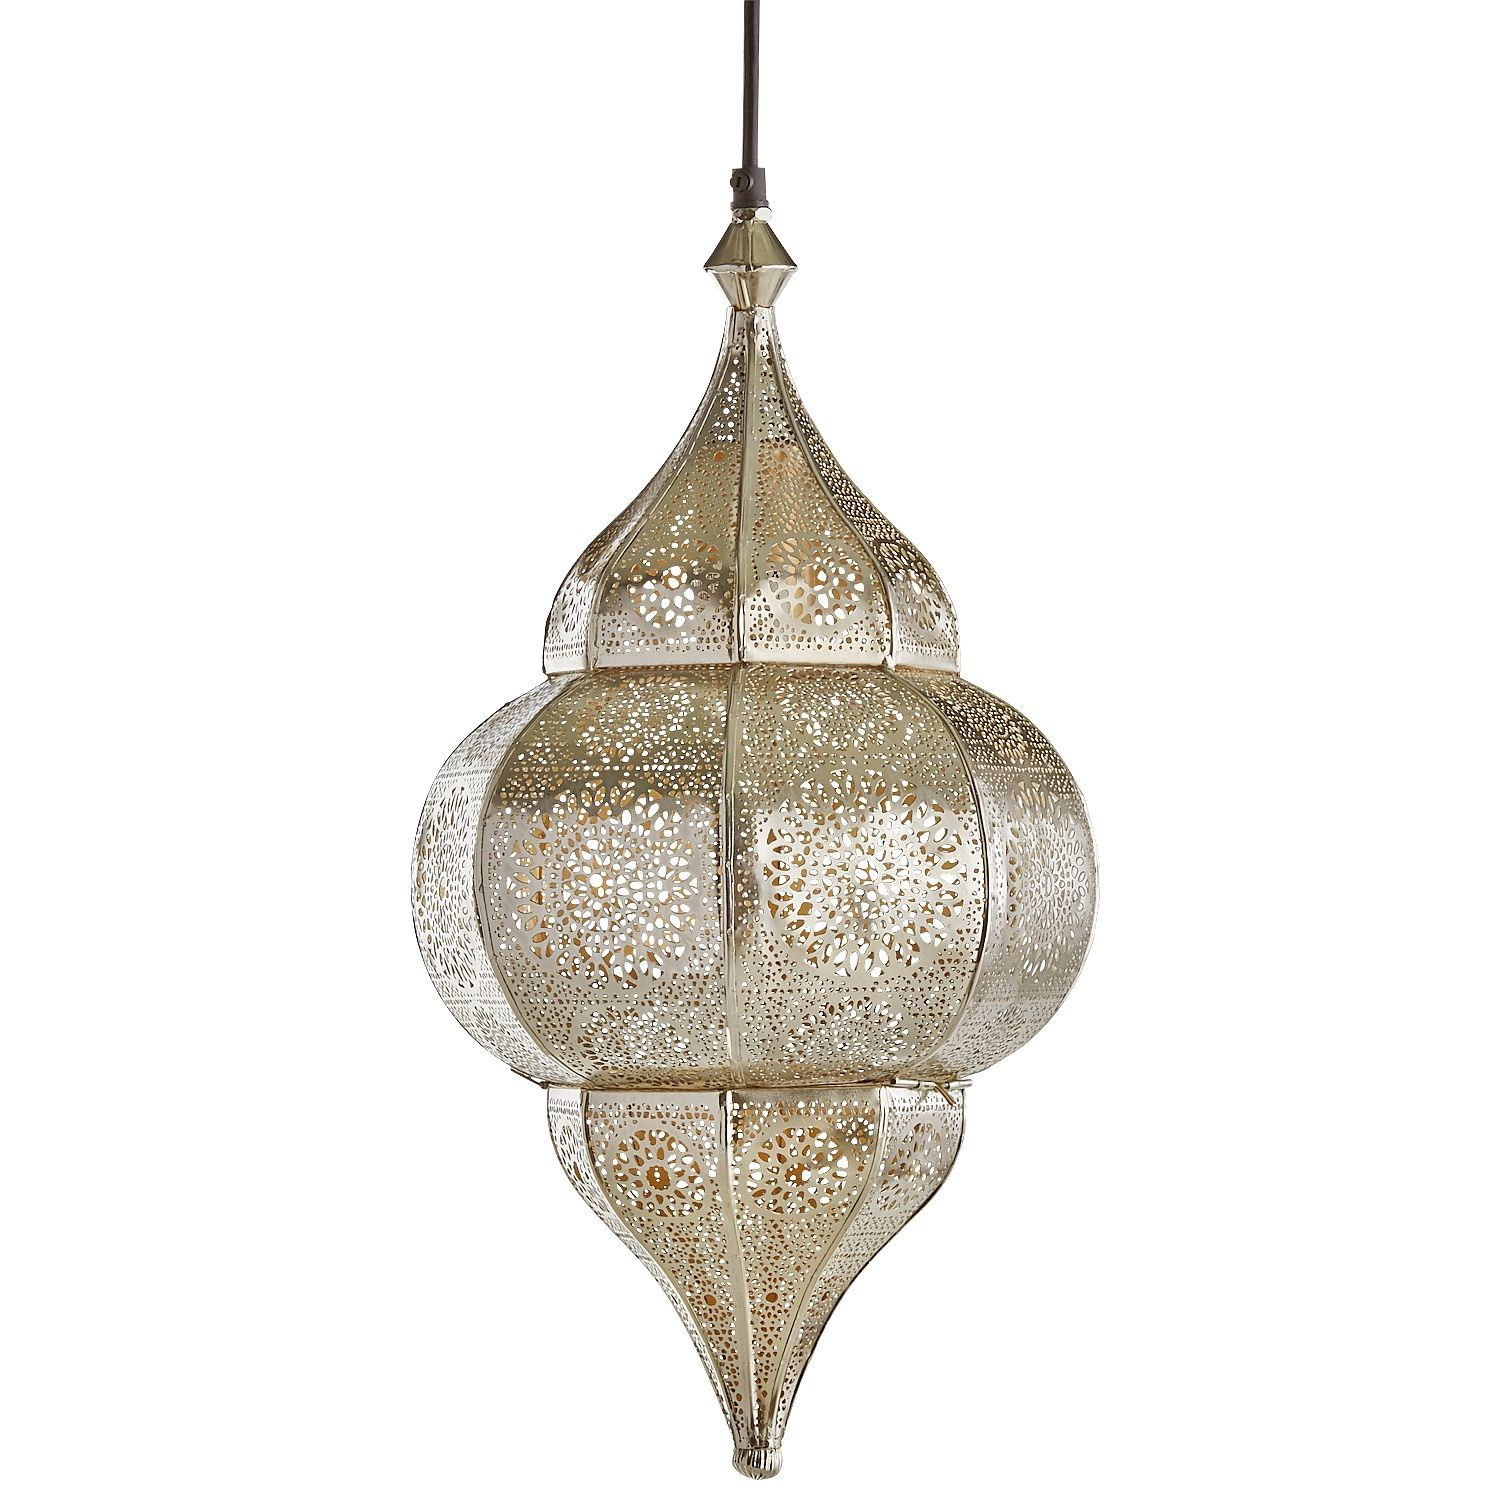 Plug In Hanging Lamps Ayla Pendant Nickel Pier 1 Index Pendant Lighting Bedroom